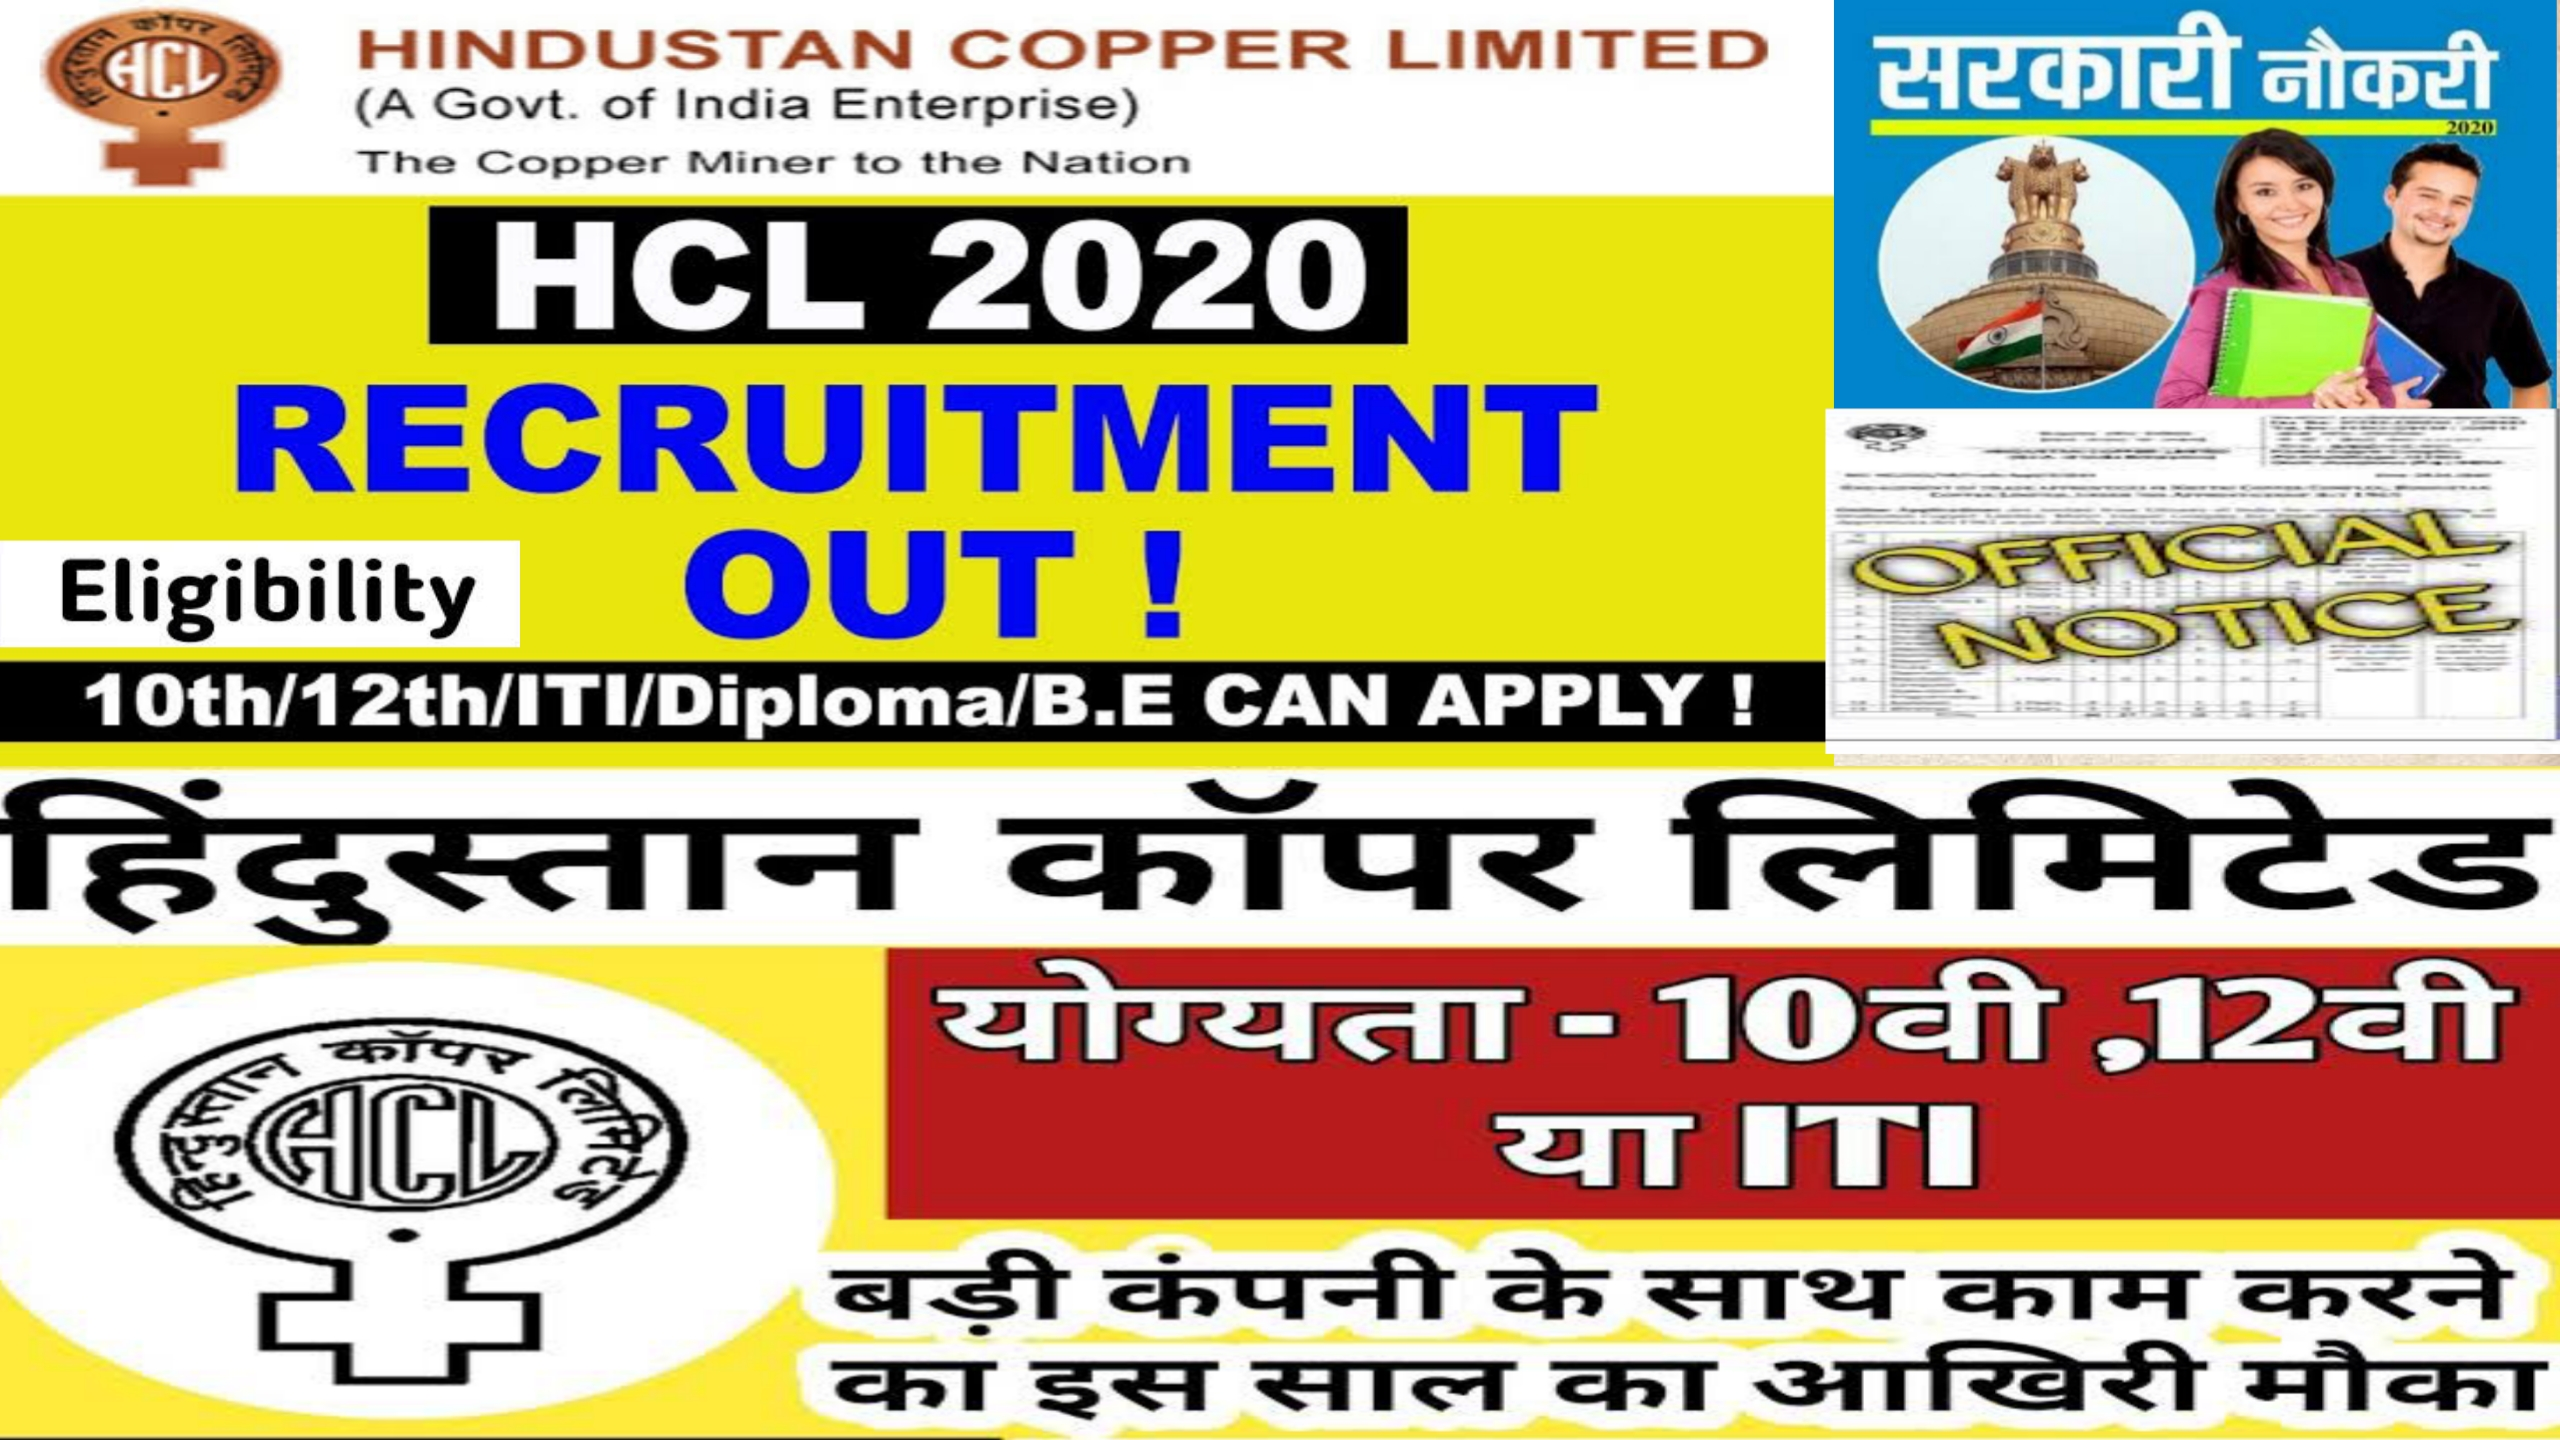 Hindustan Copper Ltd Trade Apprentice Online Form 2020